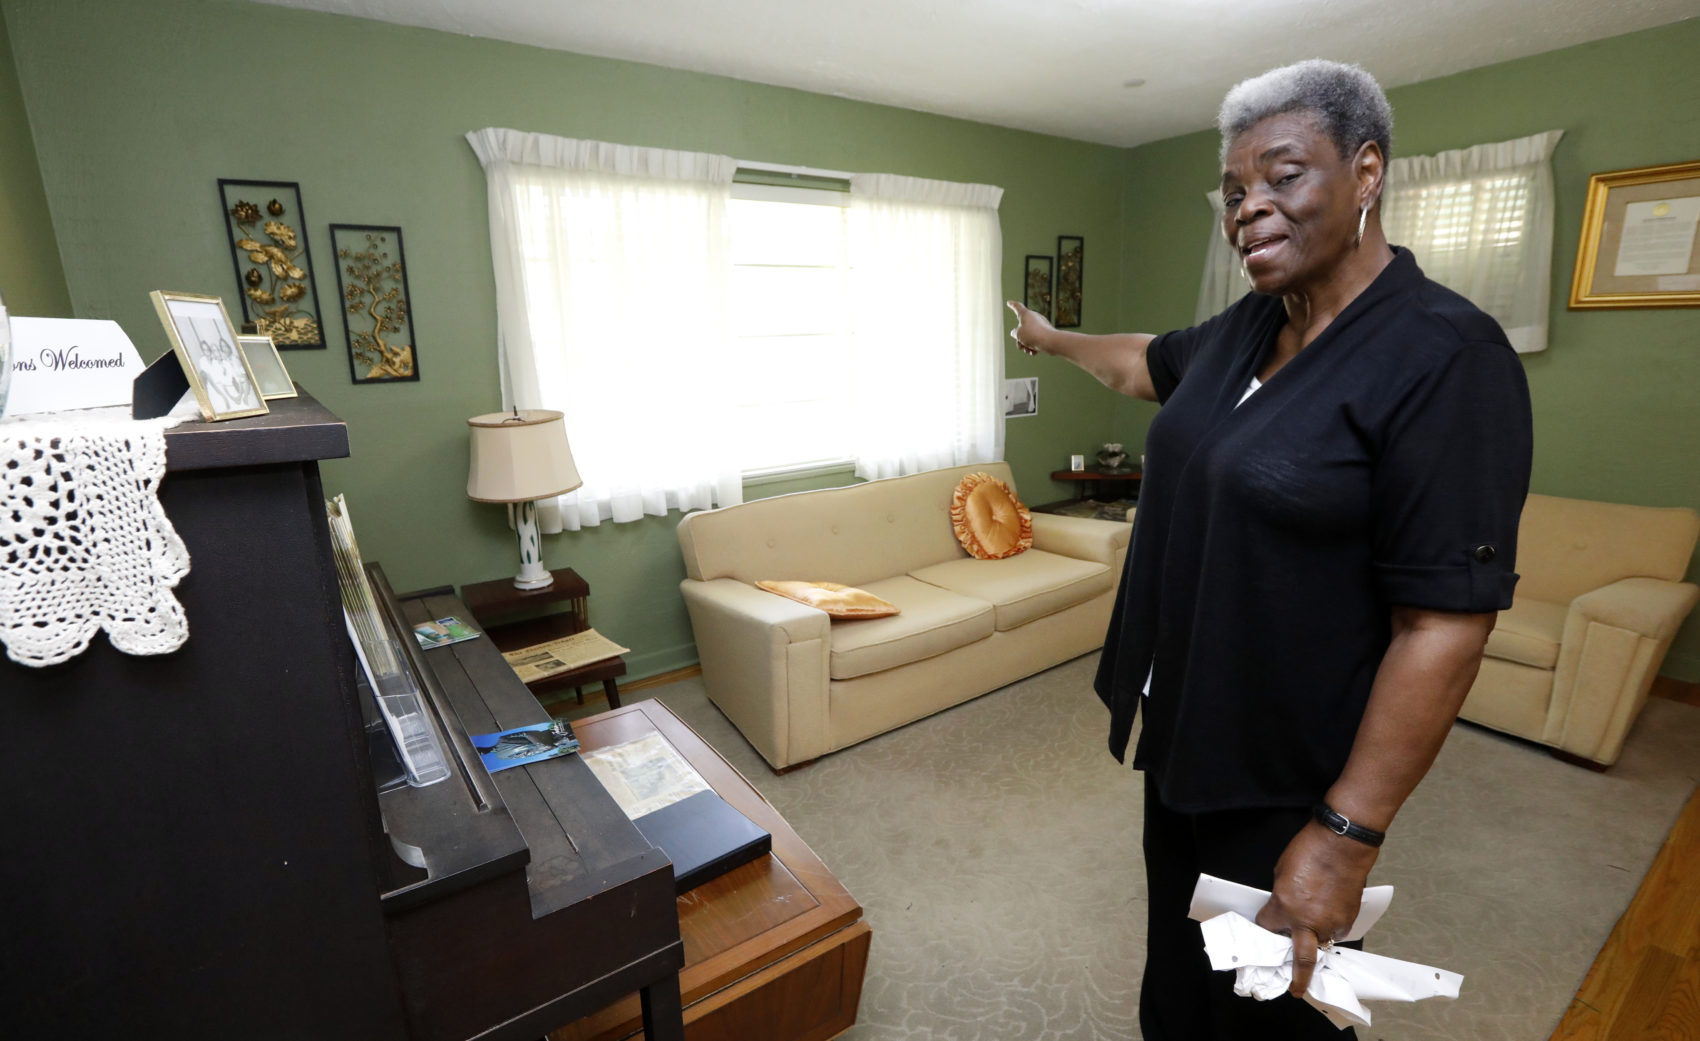 Minnie White Watson, curator of the Medgar and Myrlie Evers house in Jackson, Miss., speaks about the various times when the house was shot at, Thursday, May 24, 2018 in Jackson, Miss. (Rogelio V. Solis/AP)